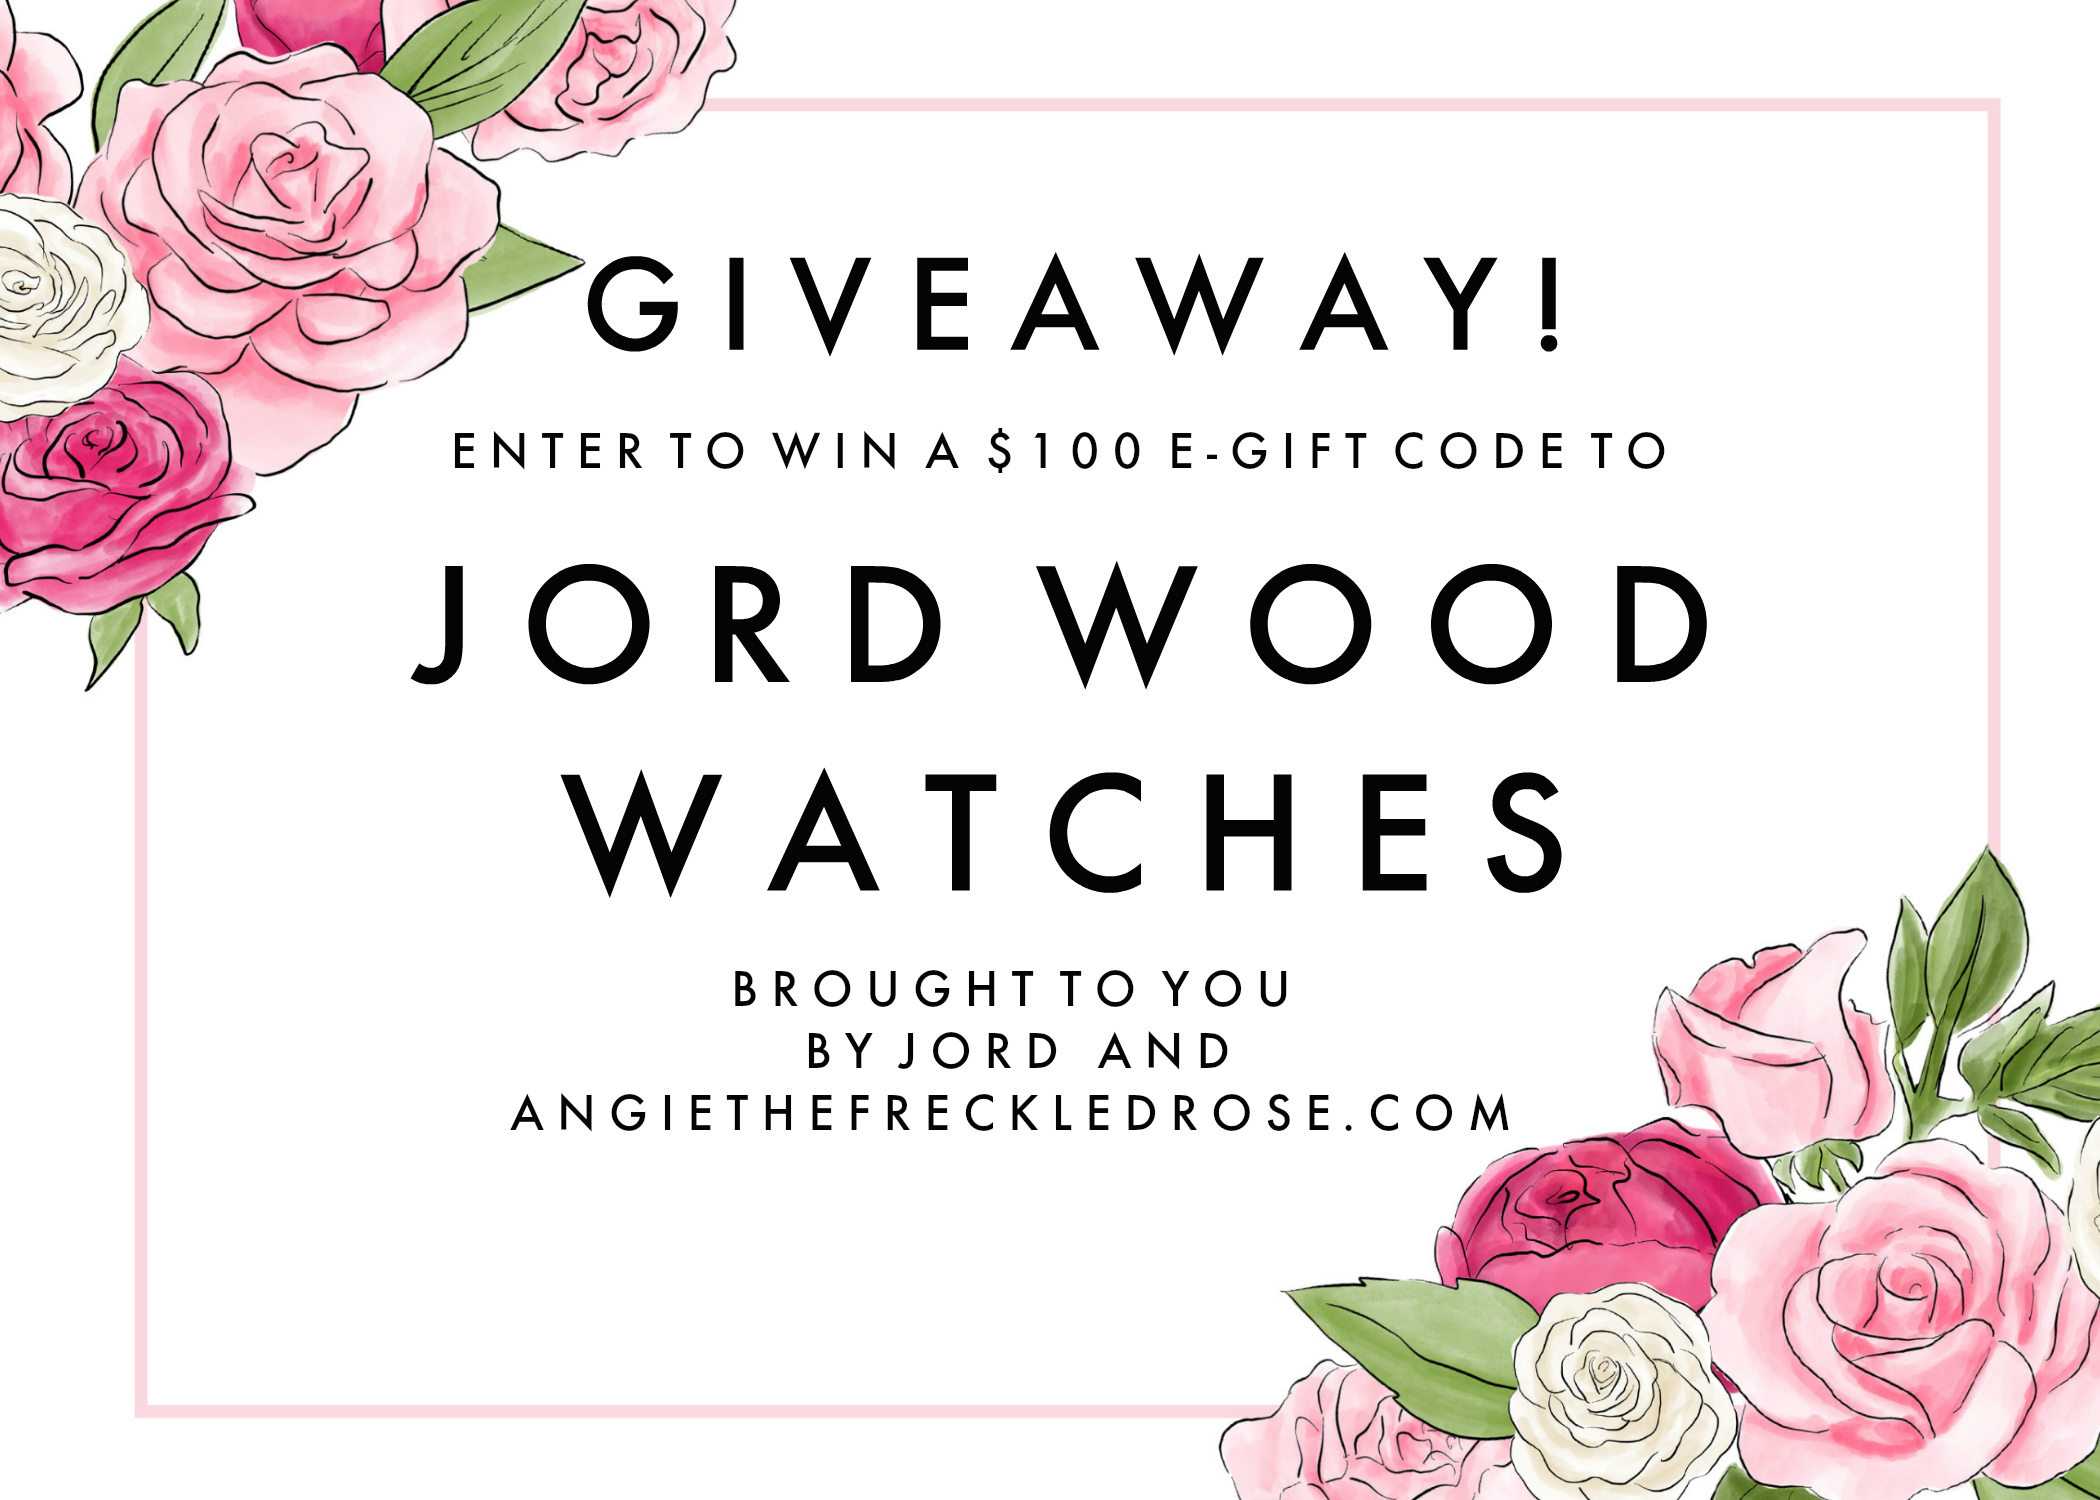 Jord Wood Watches Giveaway | angiethefreckledrose.com